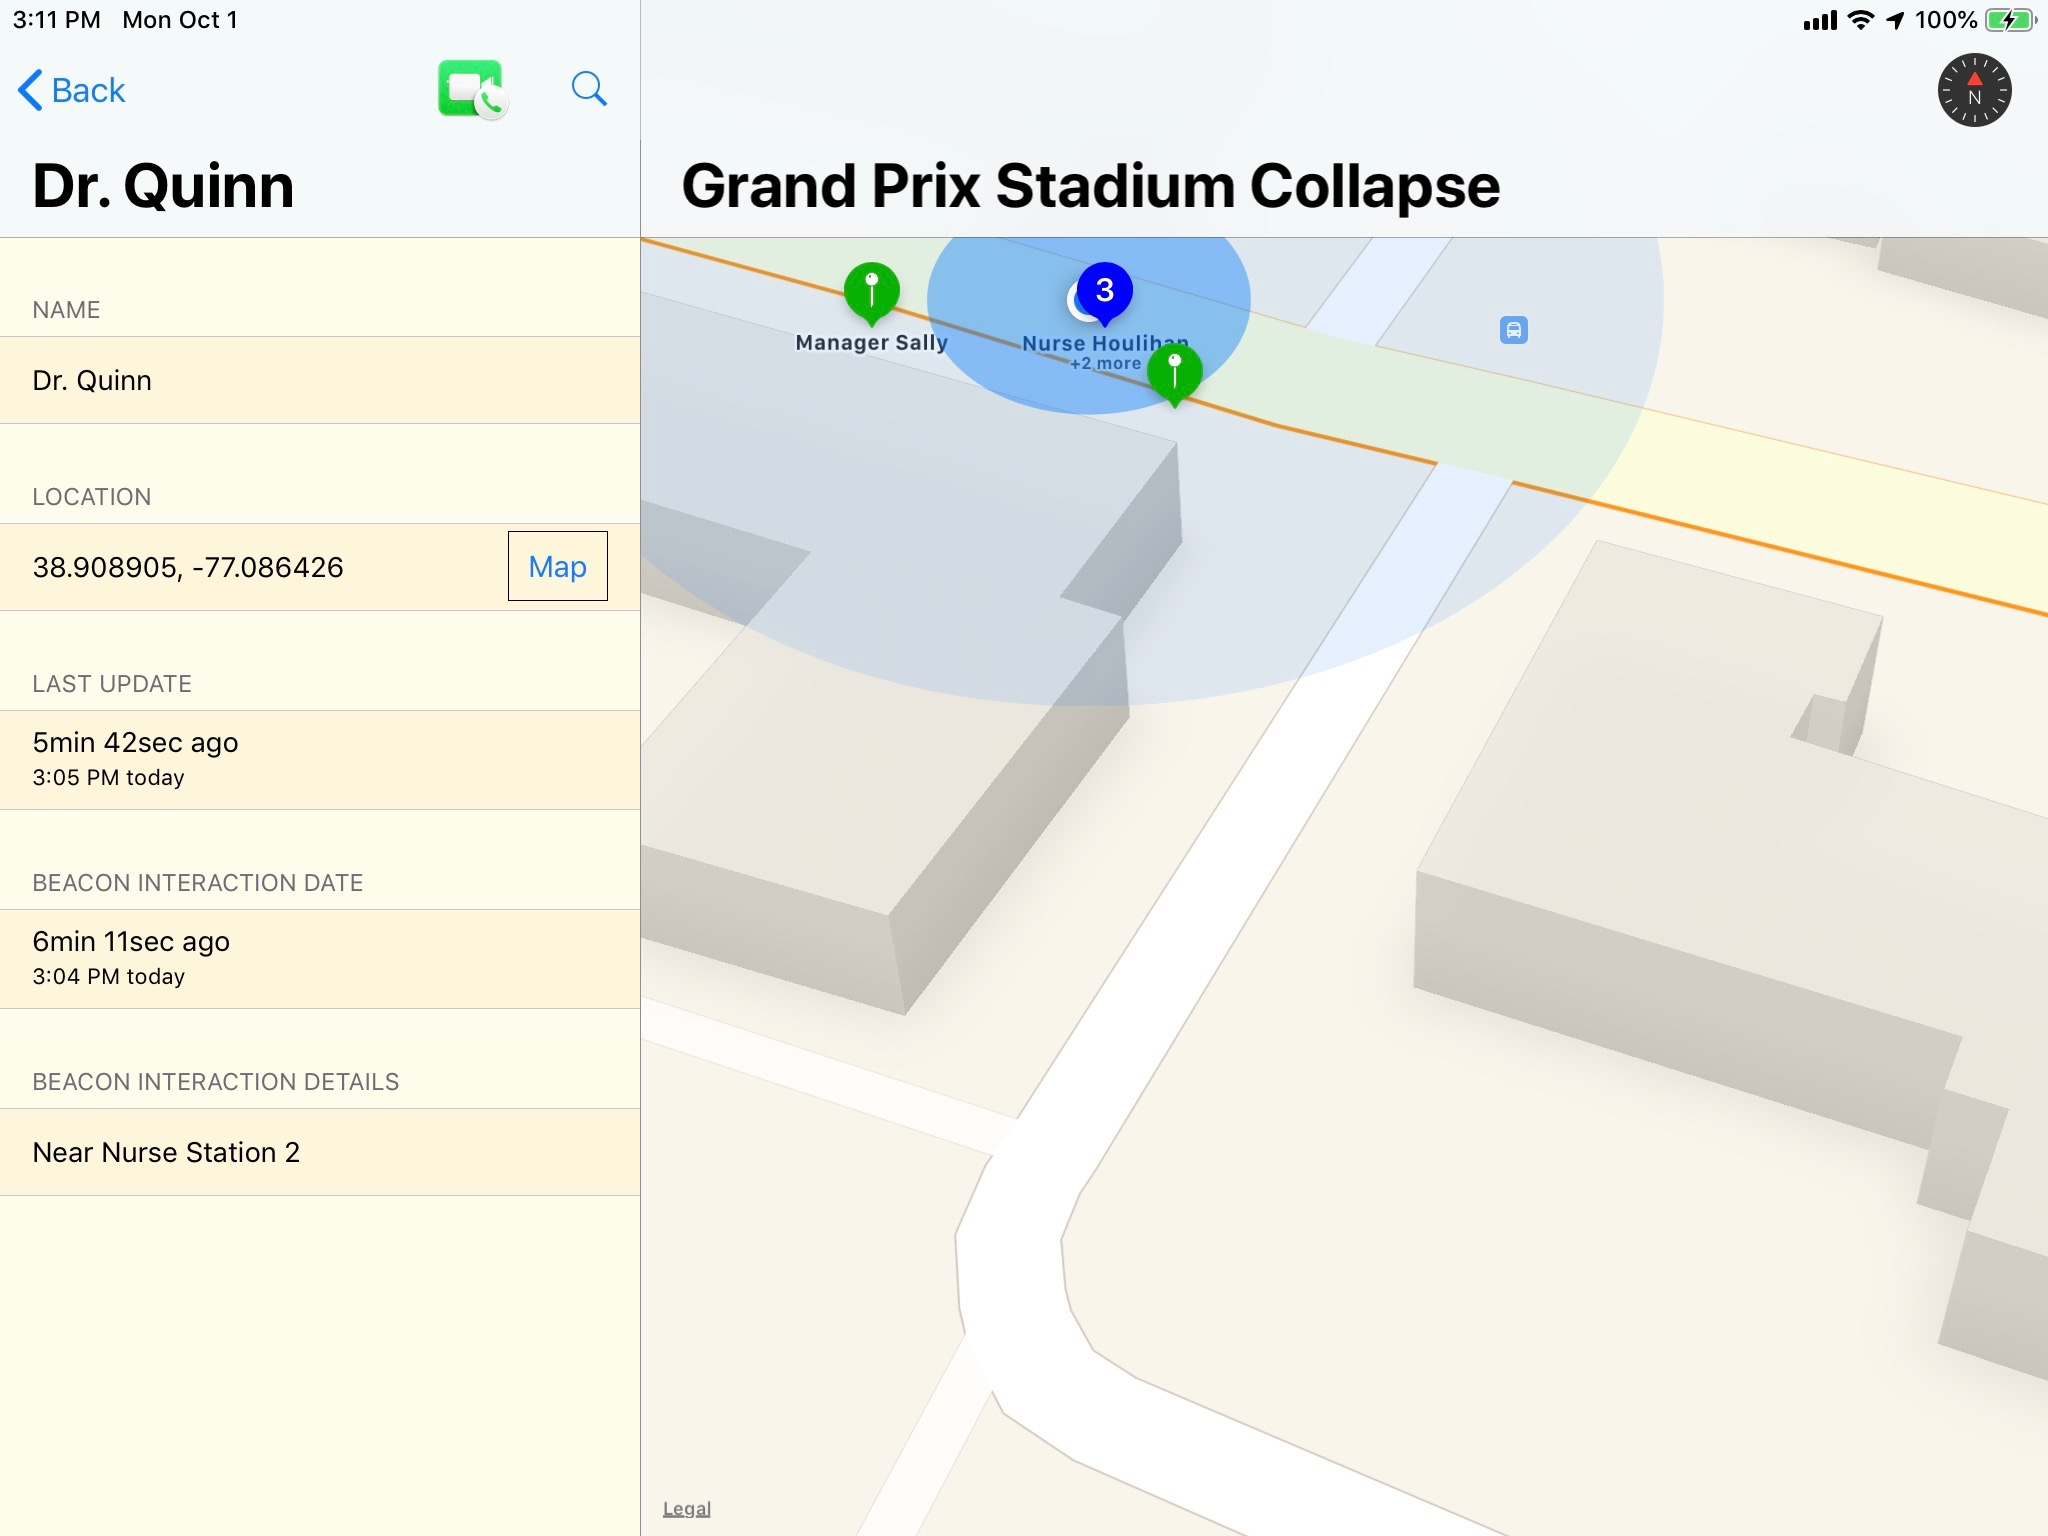 ipad-places-teams-beacons-teams-details-map-team-volunteer-details-1